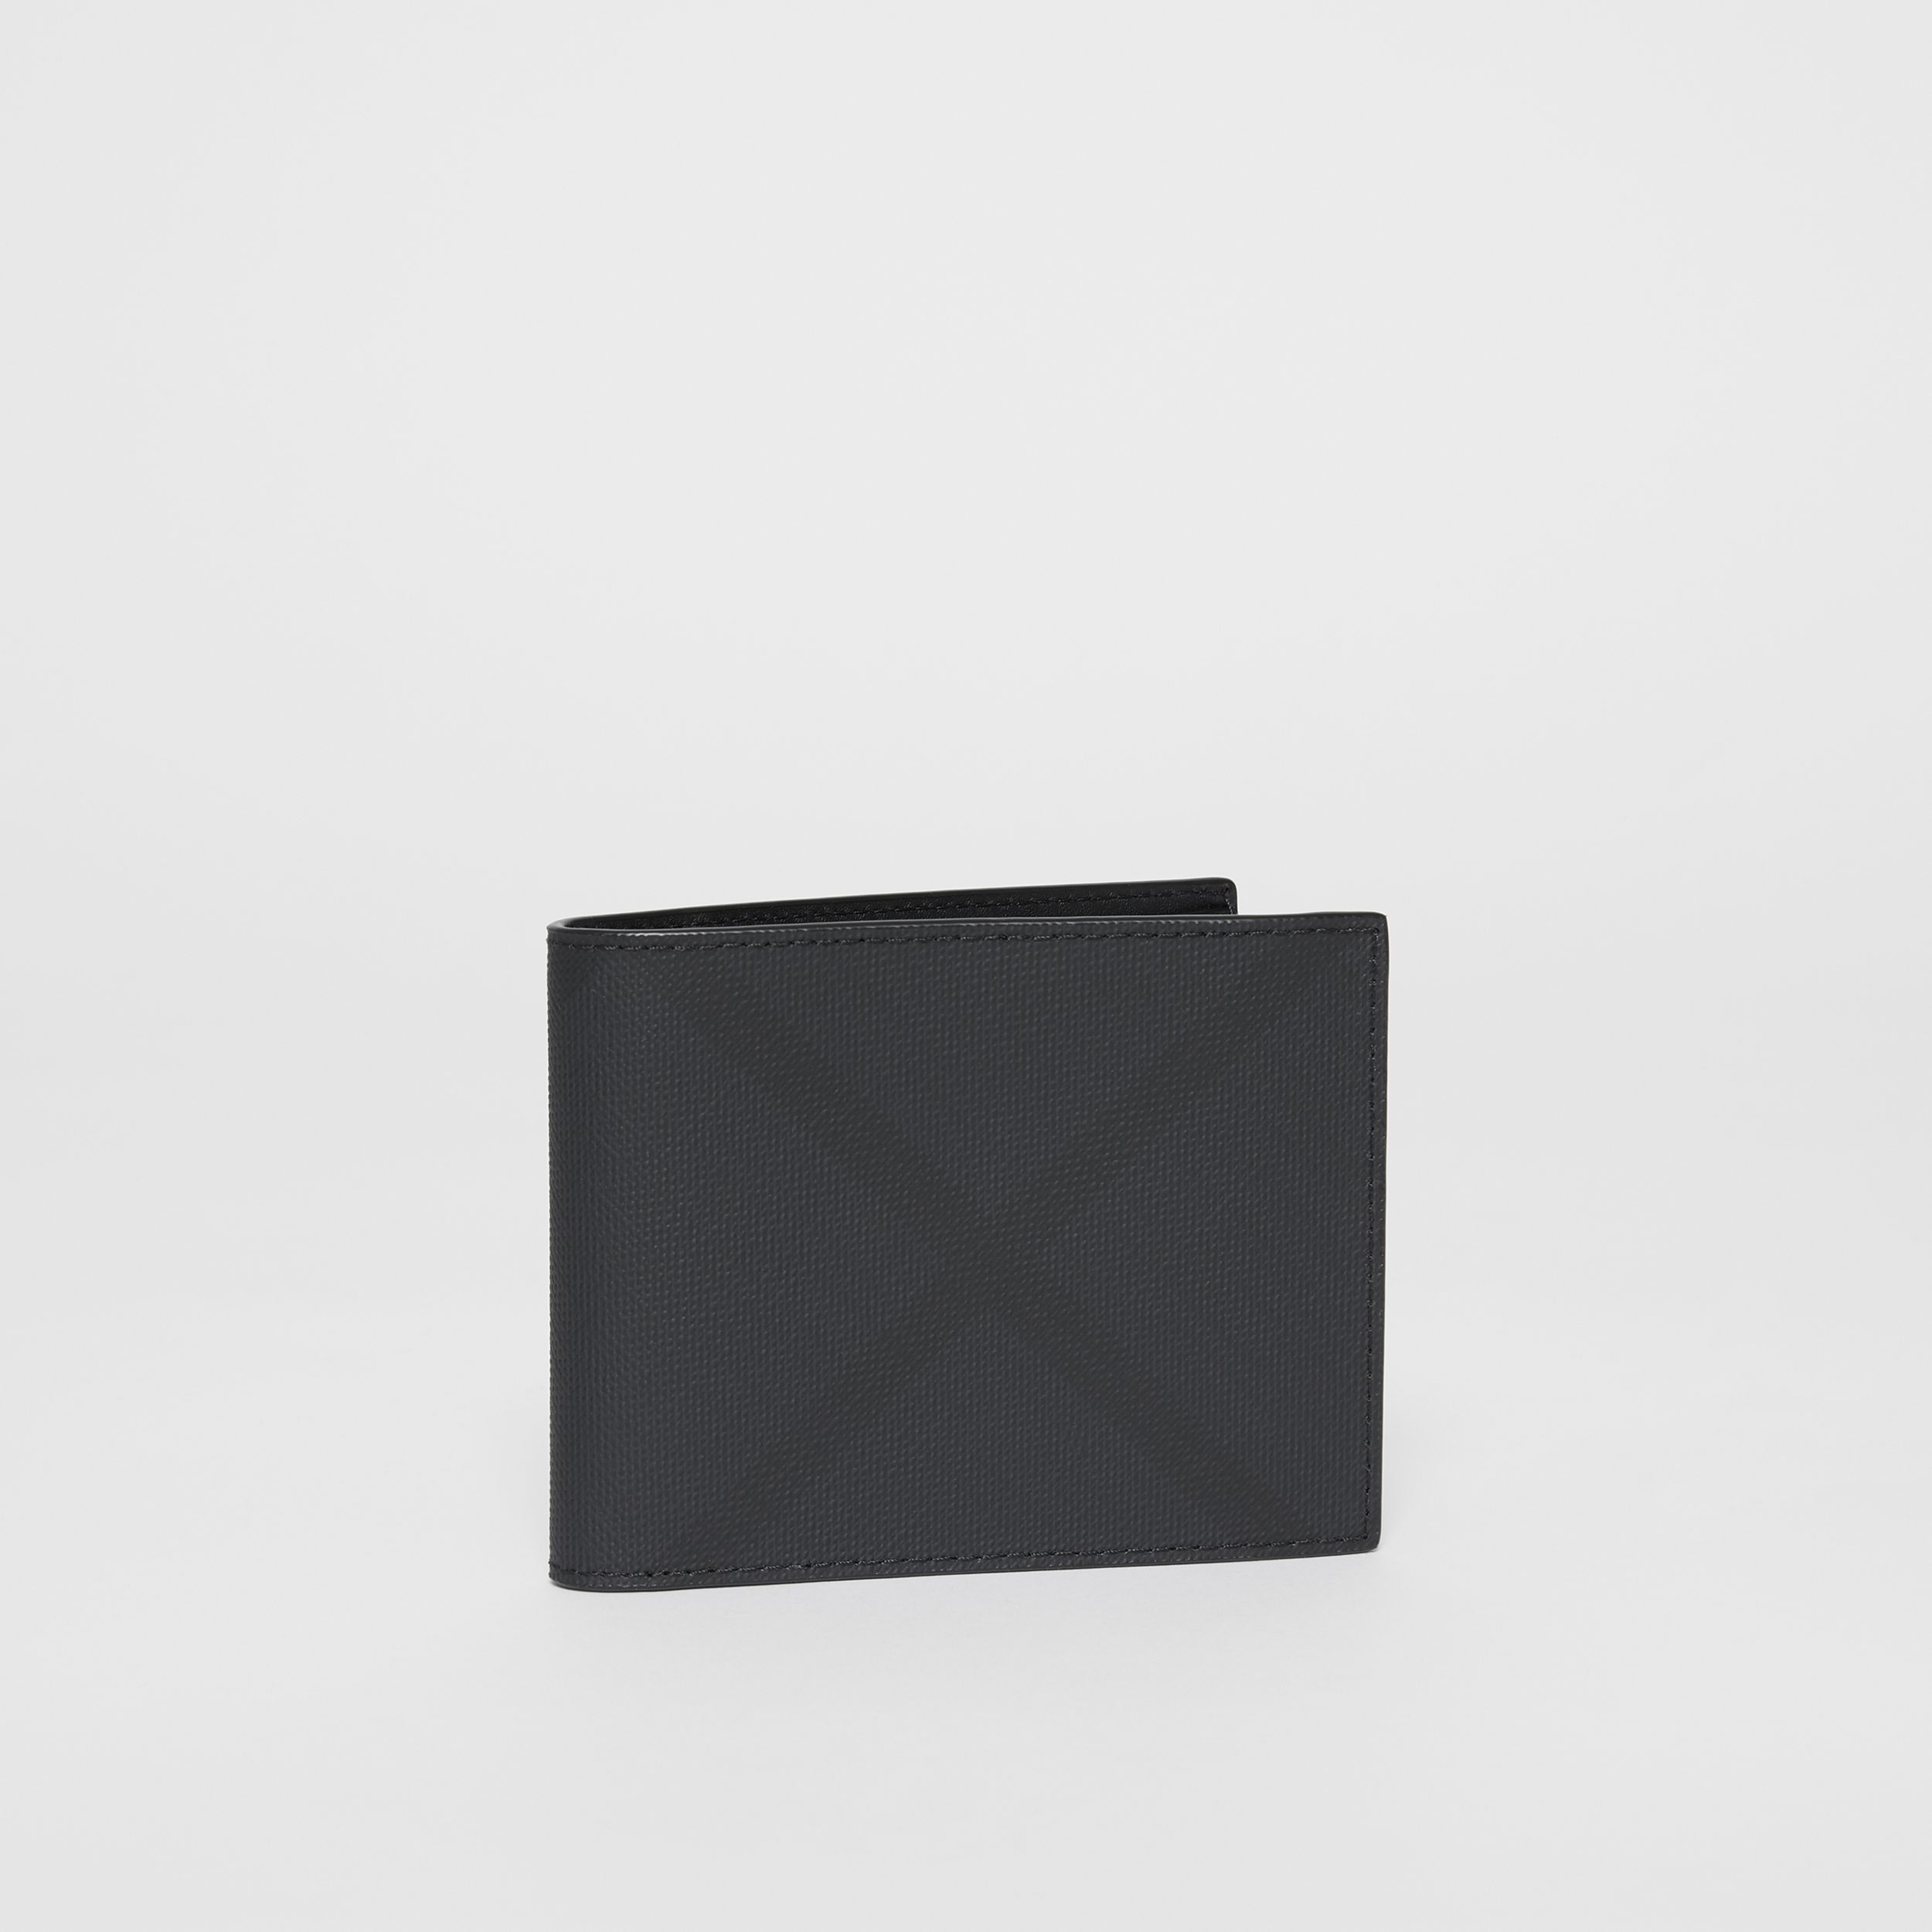 London Check and Leather Bifold Wallet in Dark Charcoal - Men | Burberry - 4